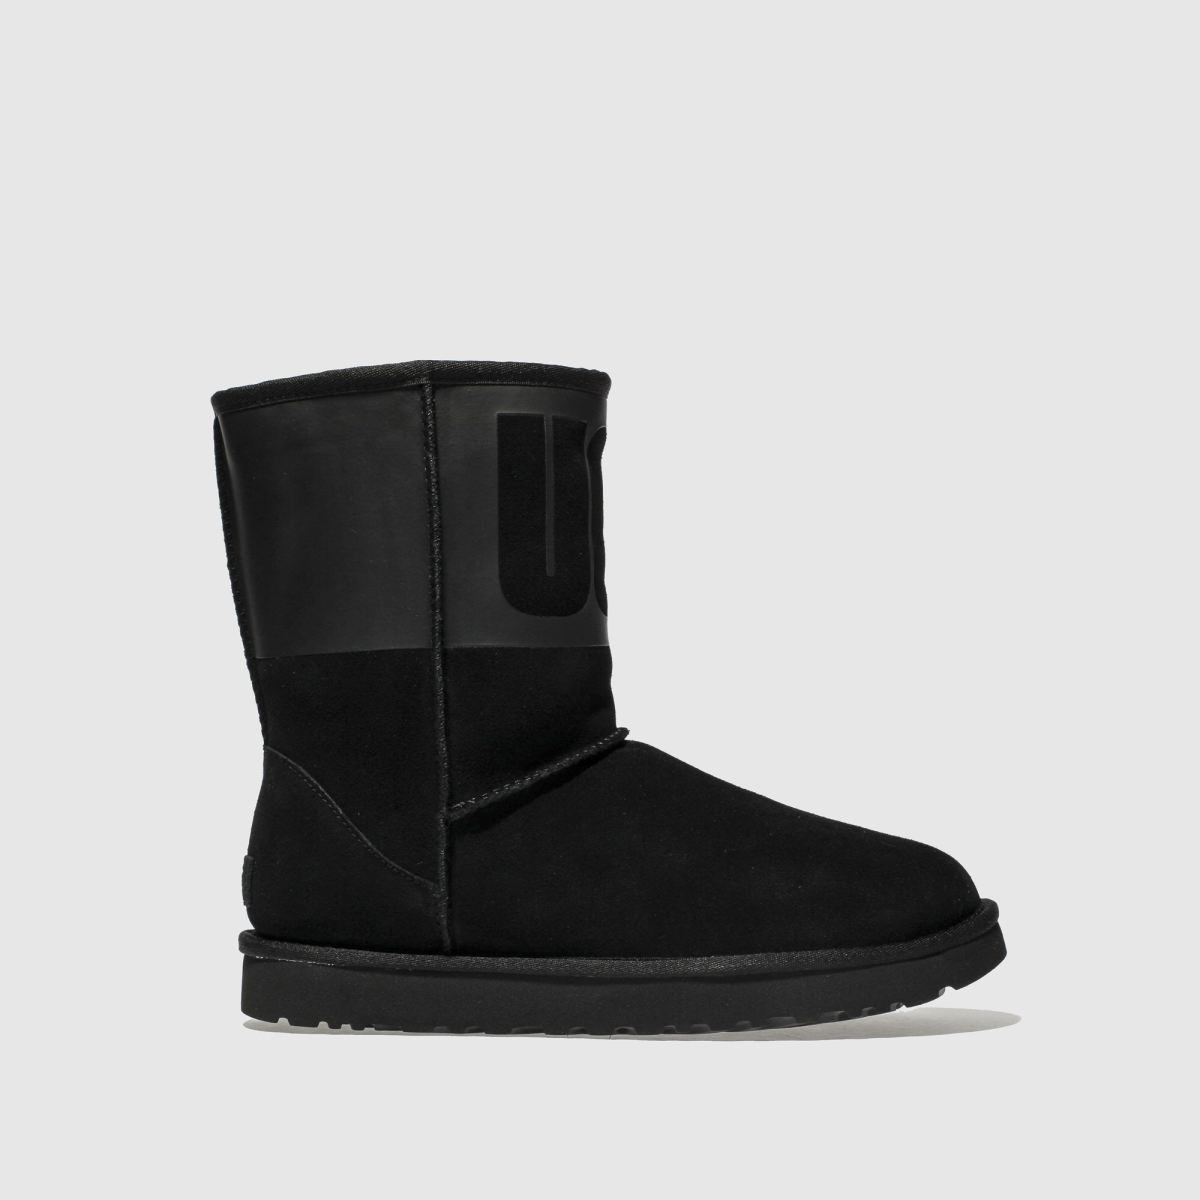 Ugg Black Classic Short Rubber Boots